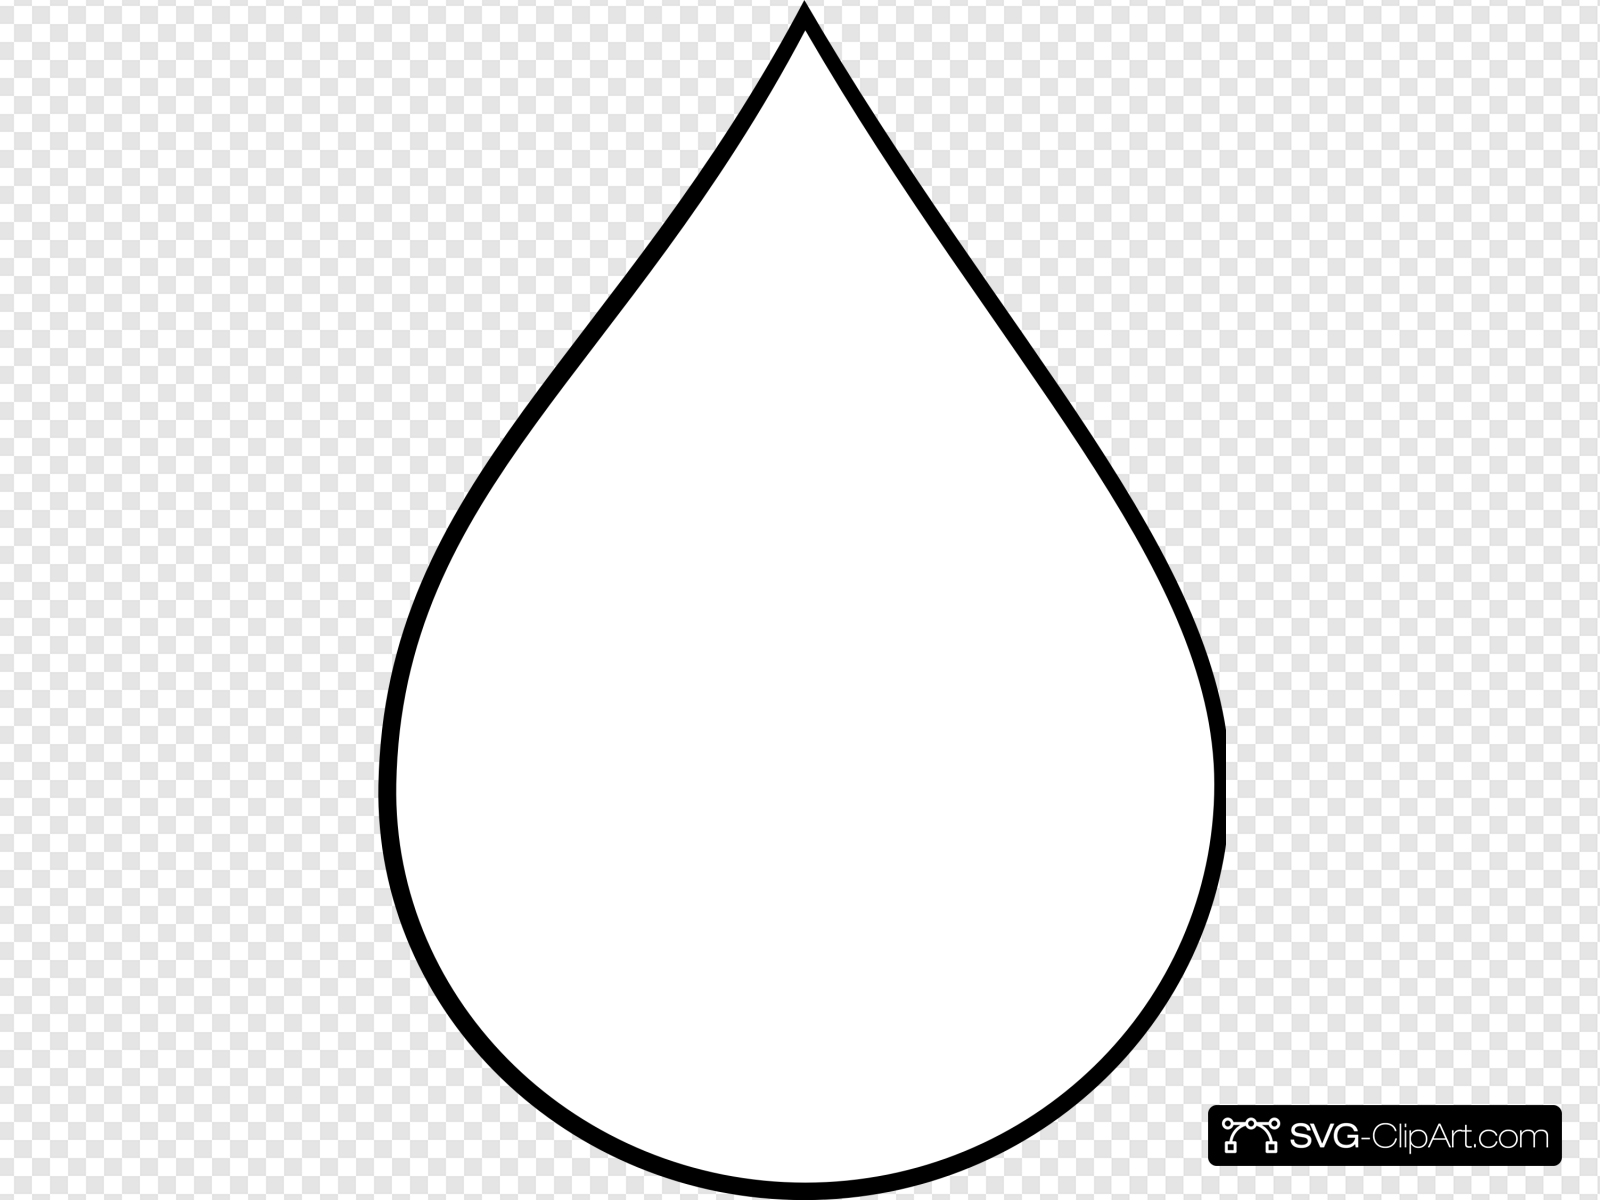 Water Droplet Clip art, Icon and SVG.